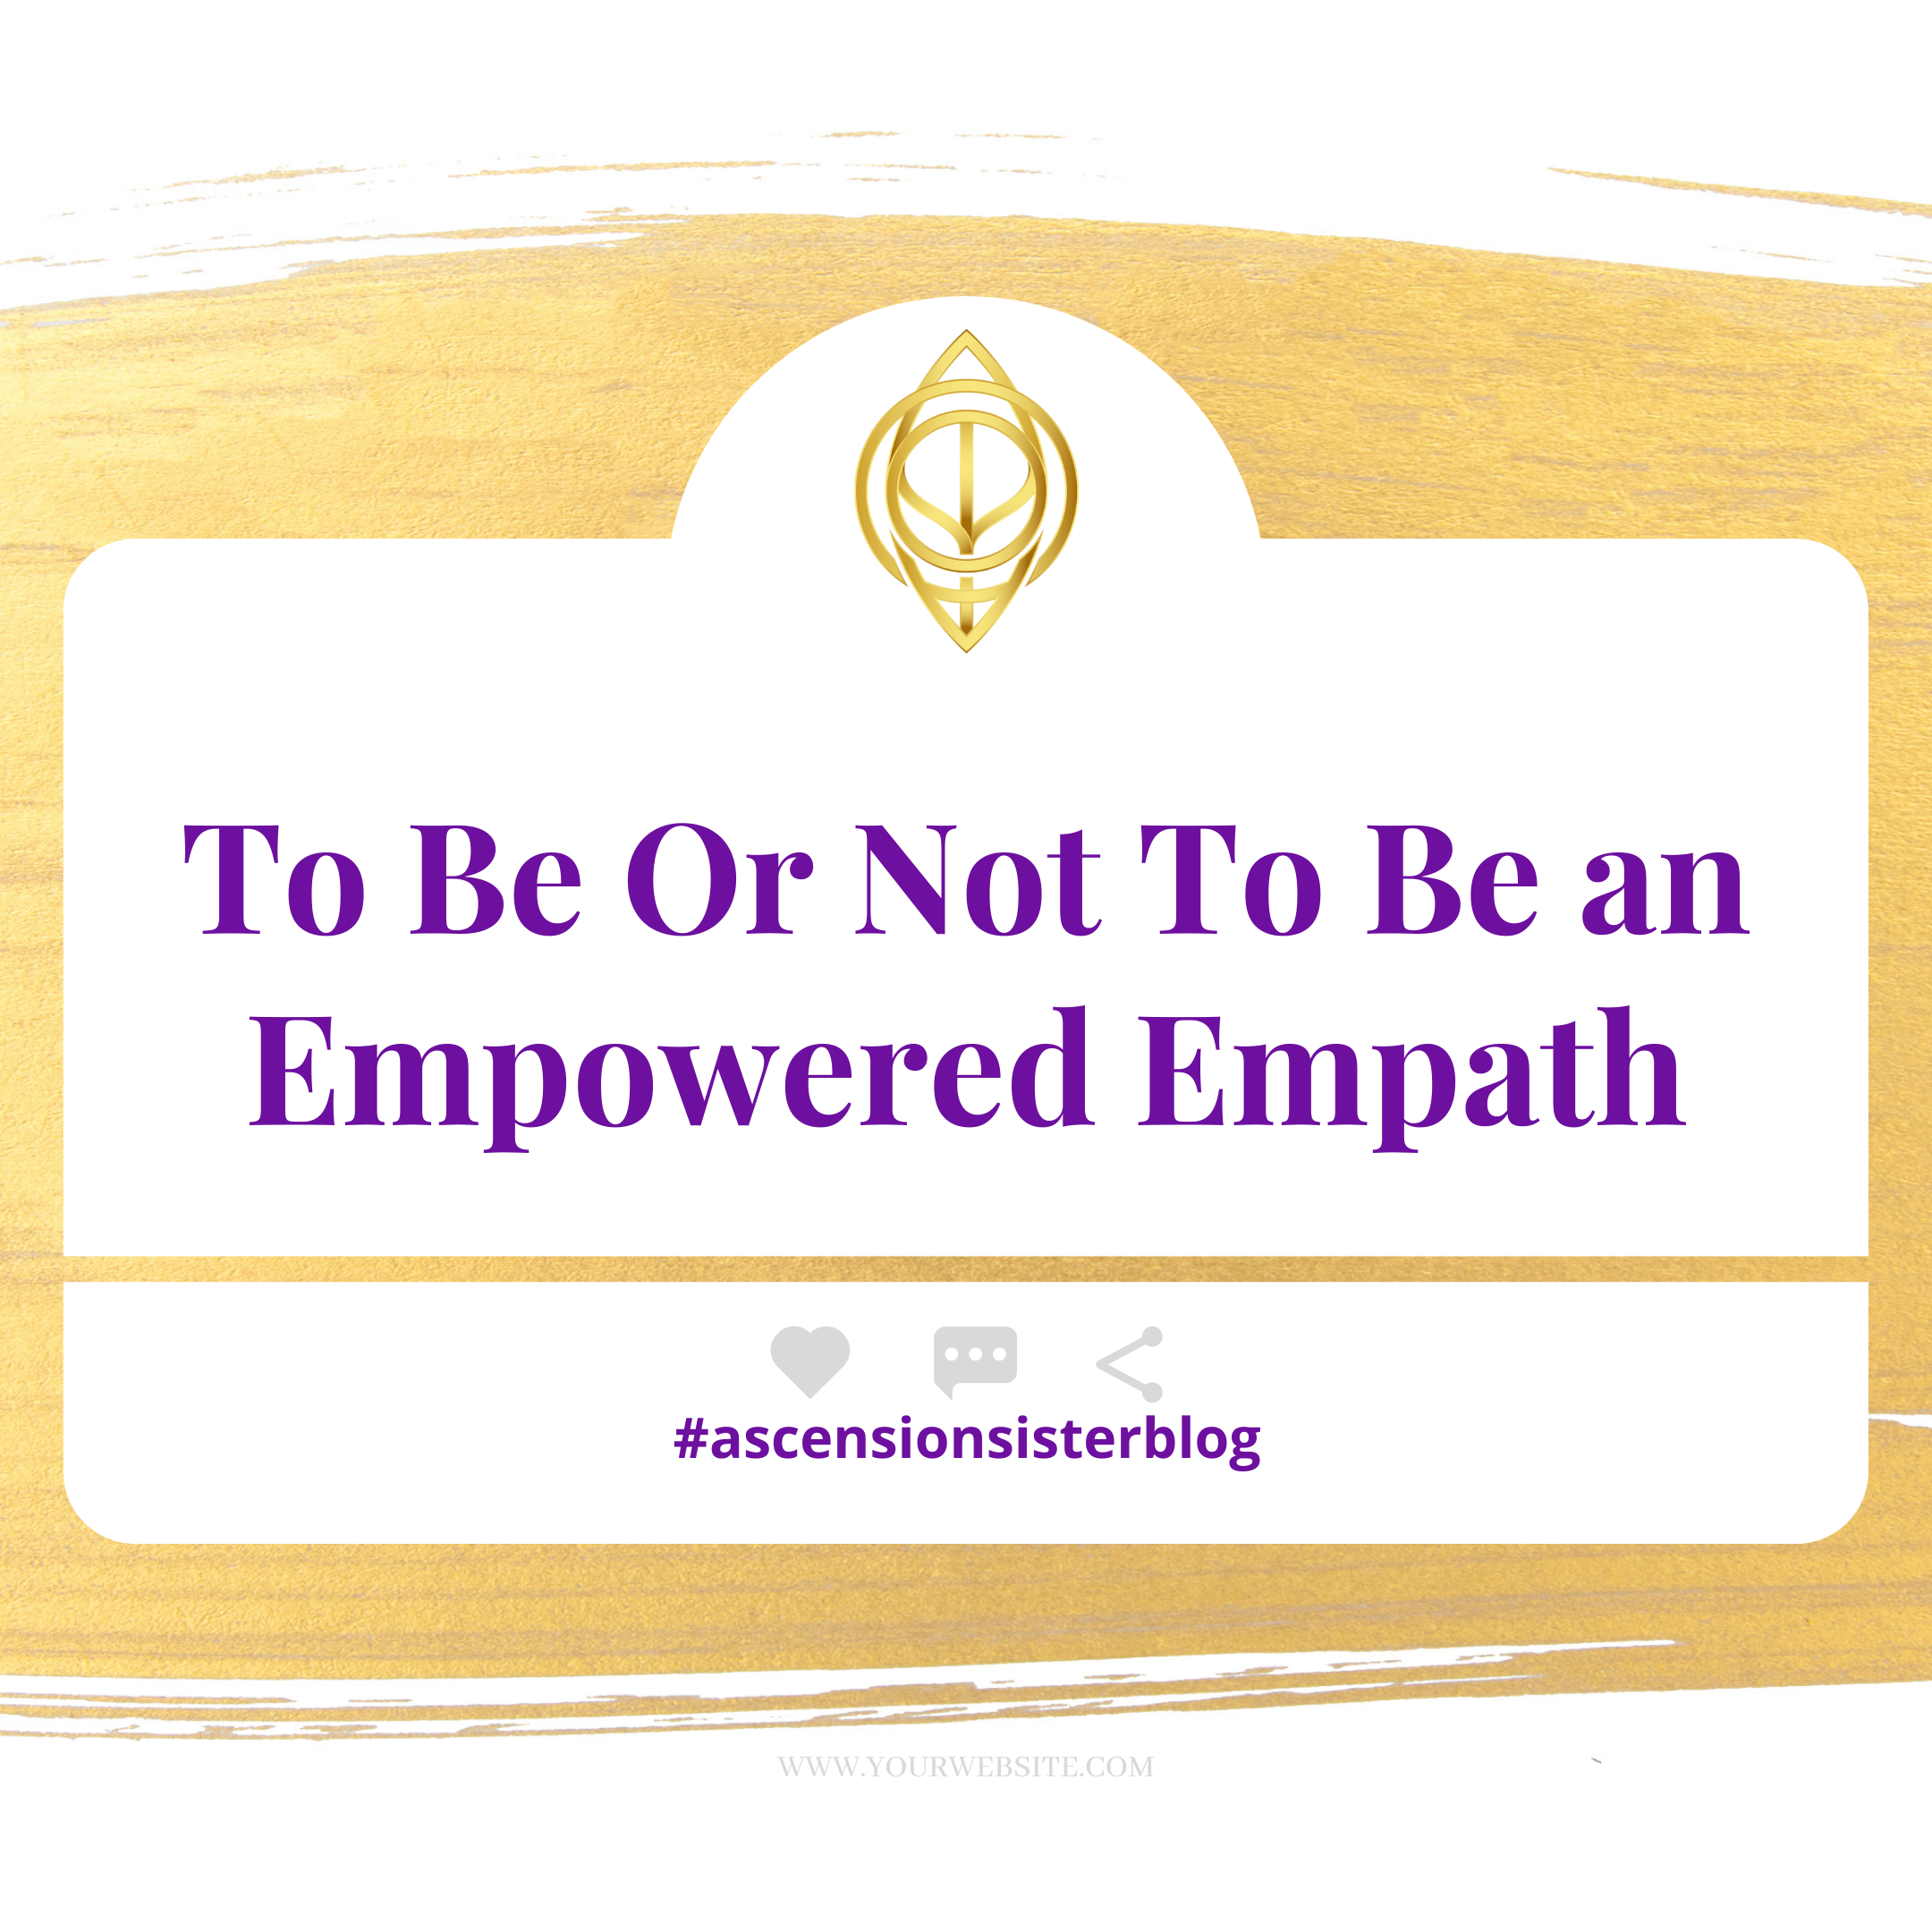 To Be or Not To Be An Empowered Empath